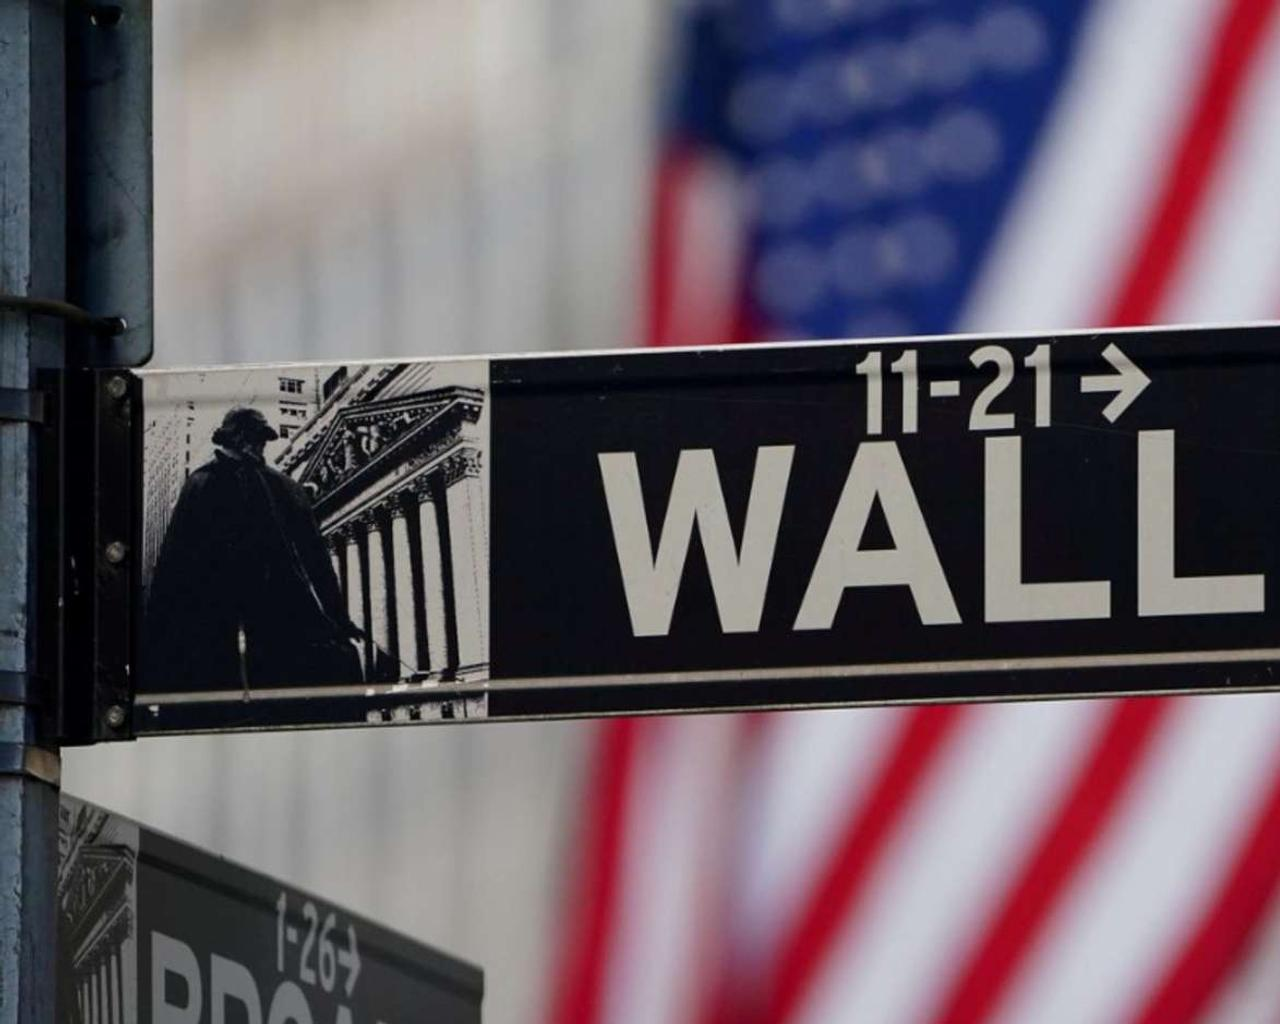 Wall Street: the Dow Jones and the S&P 500 broke new records at the close